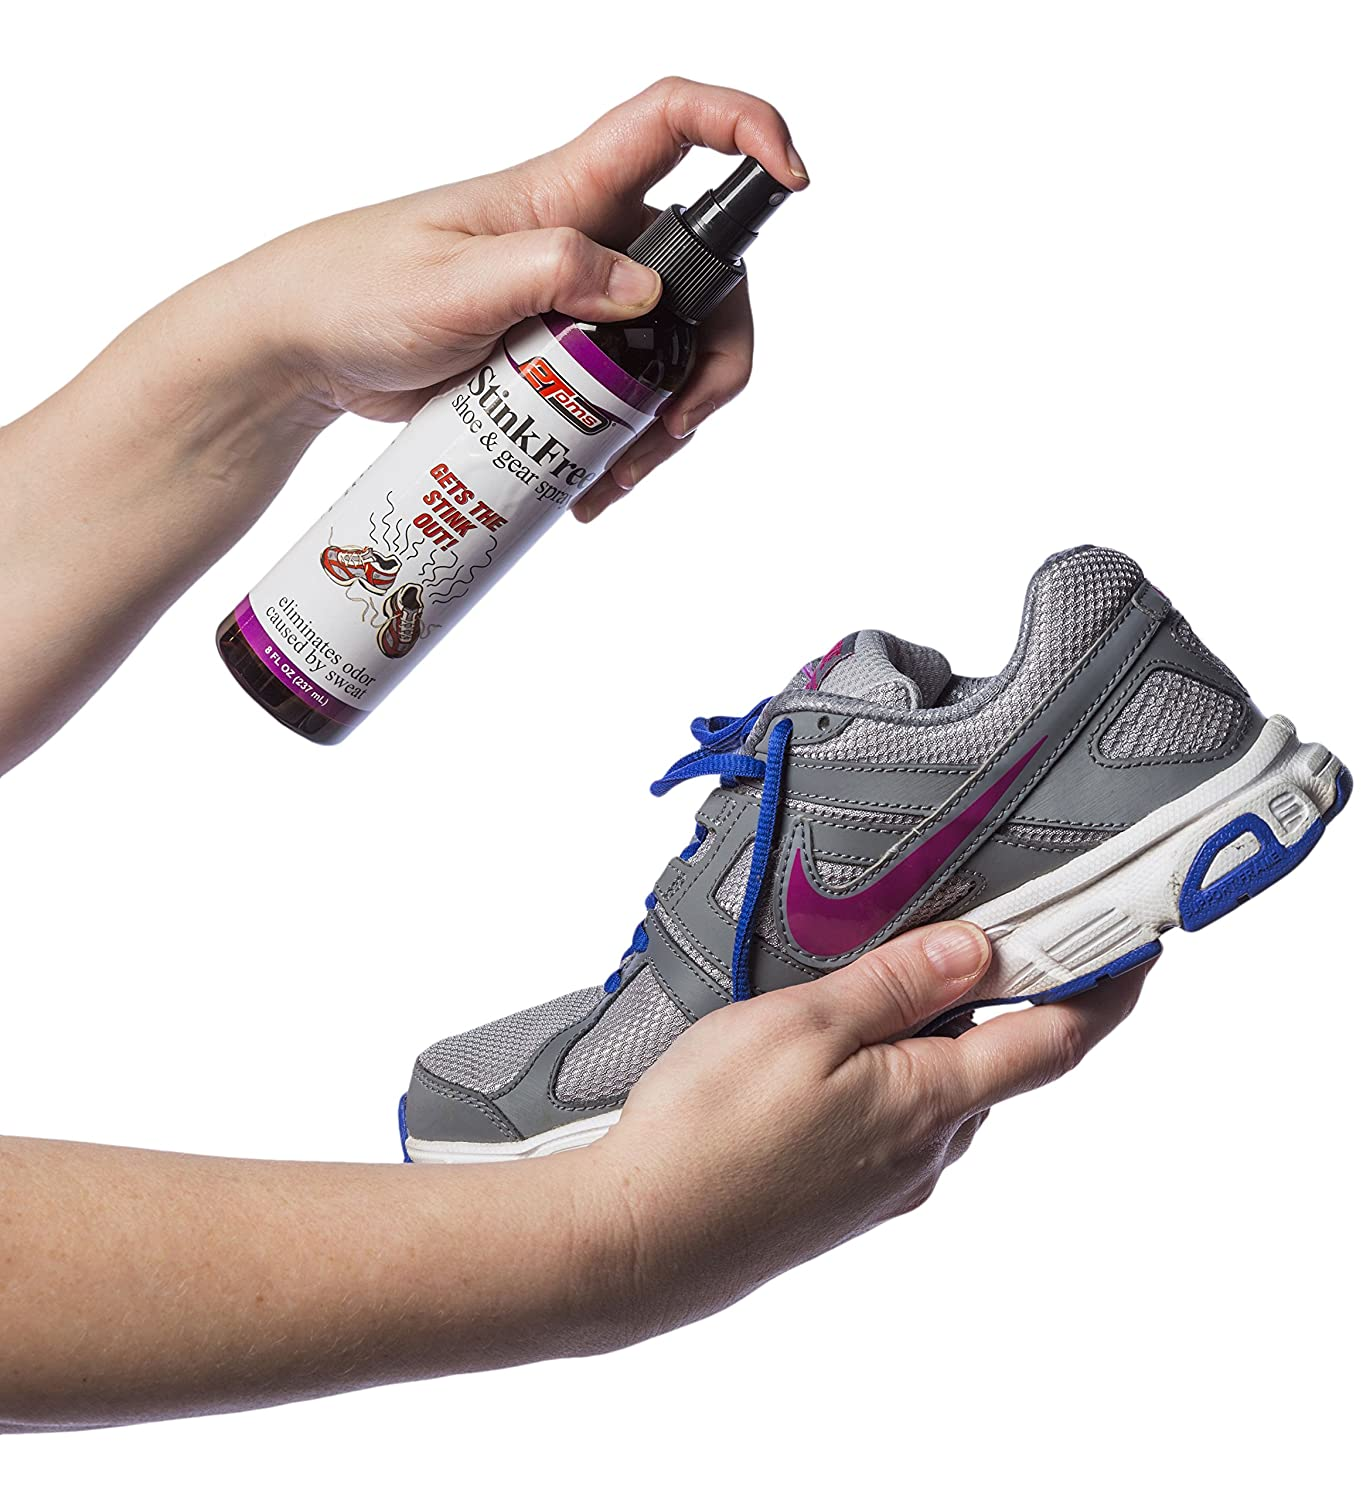 Stink Free Shoe Spray Review